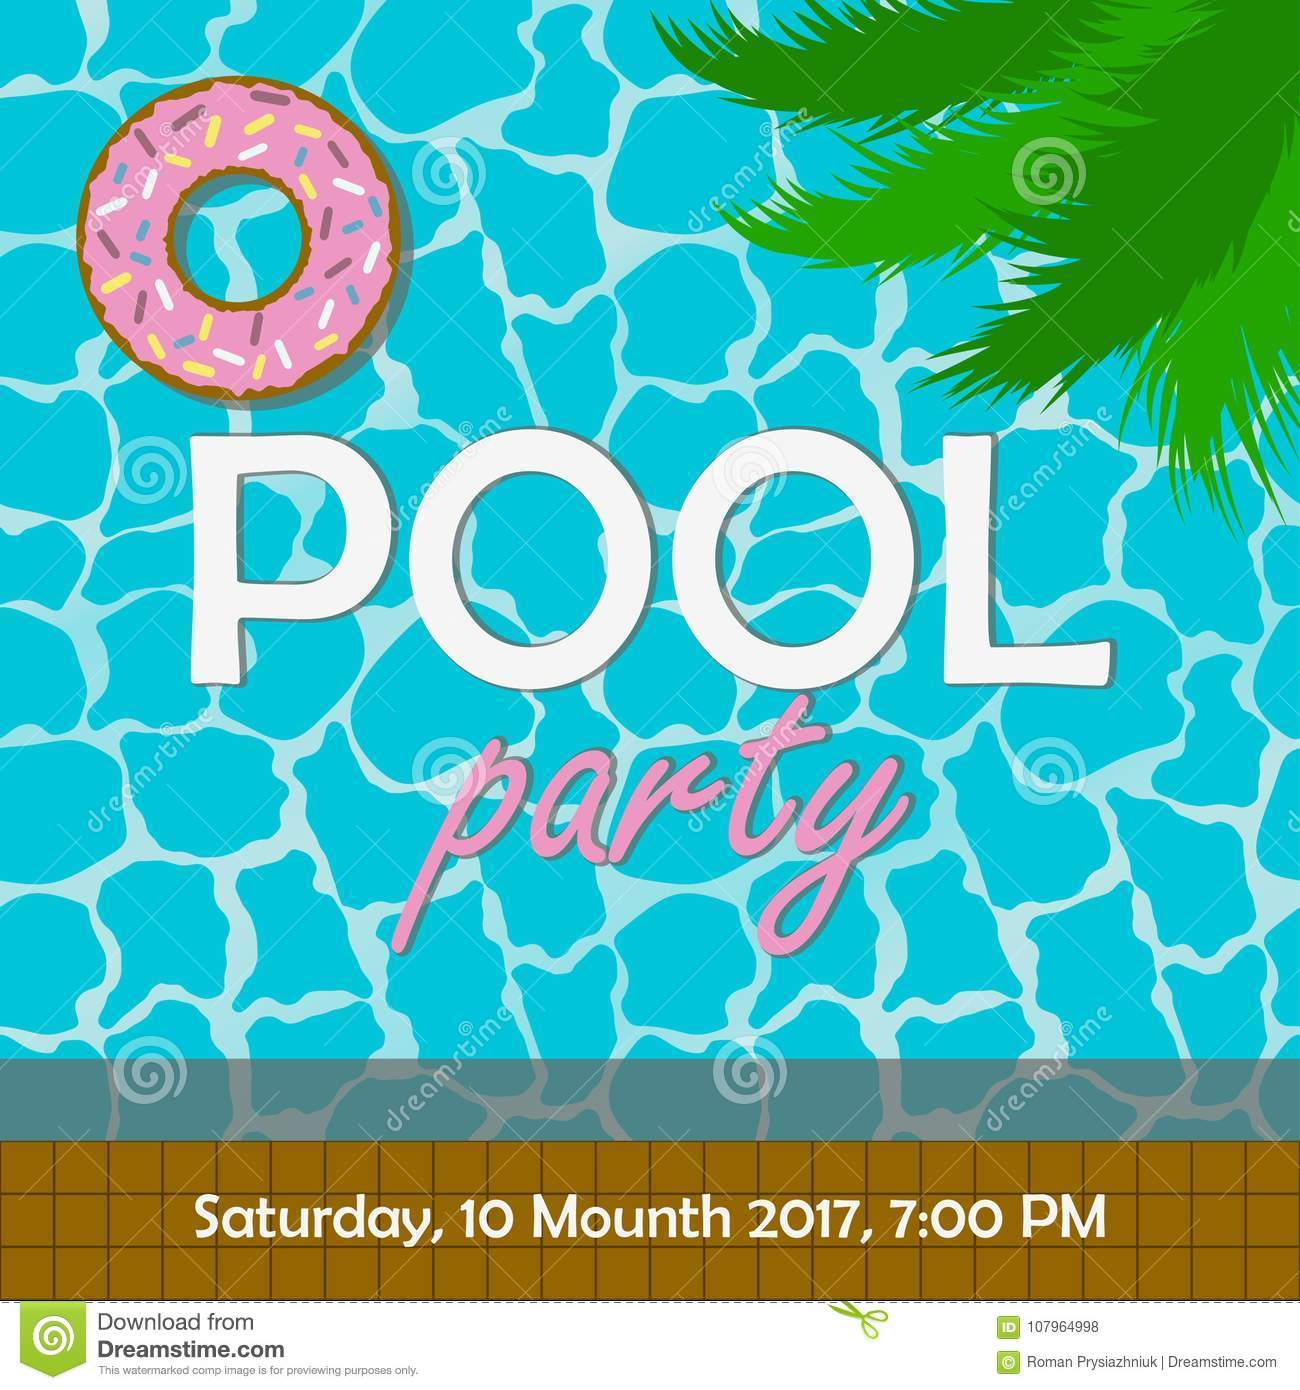 pool party invitation stock photos 84 images. Black Bedroom Furniture Sets. Home Design Ideas